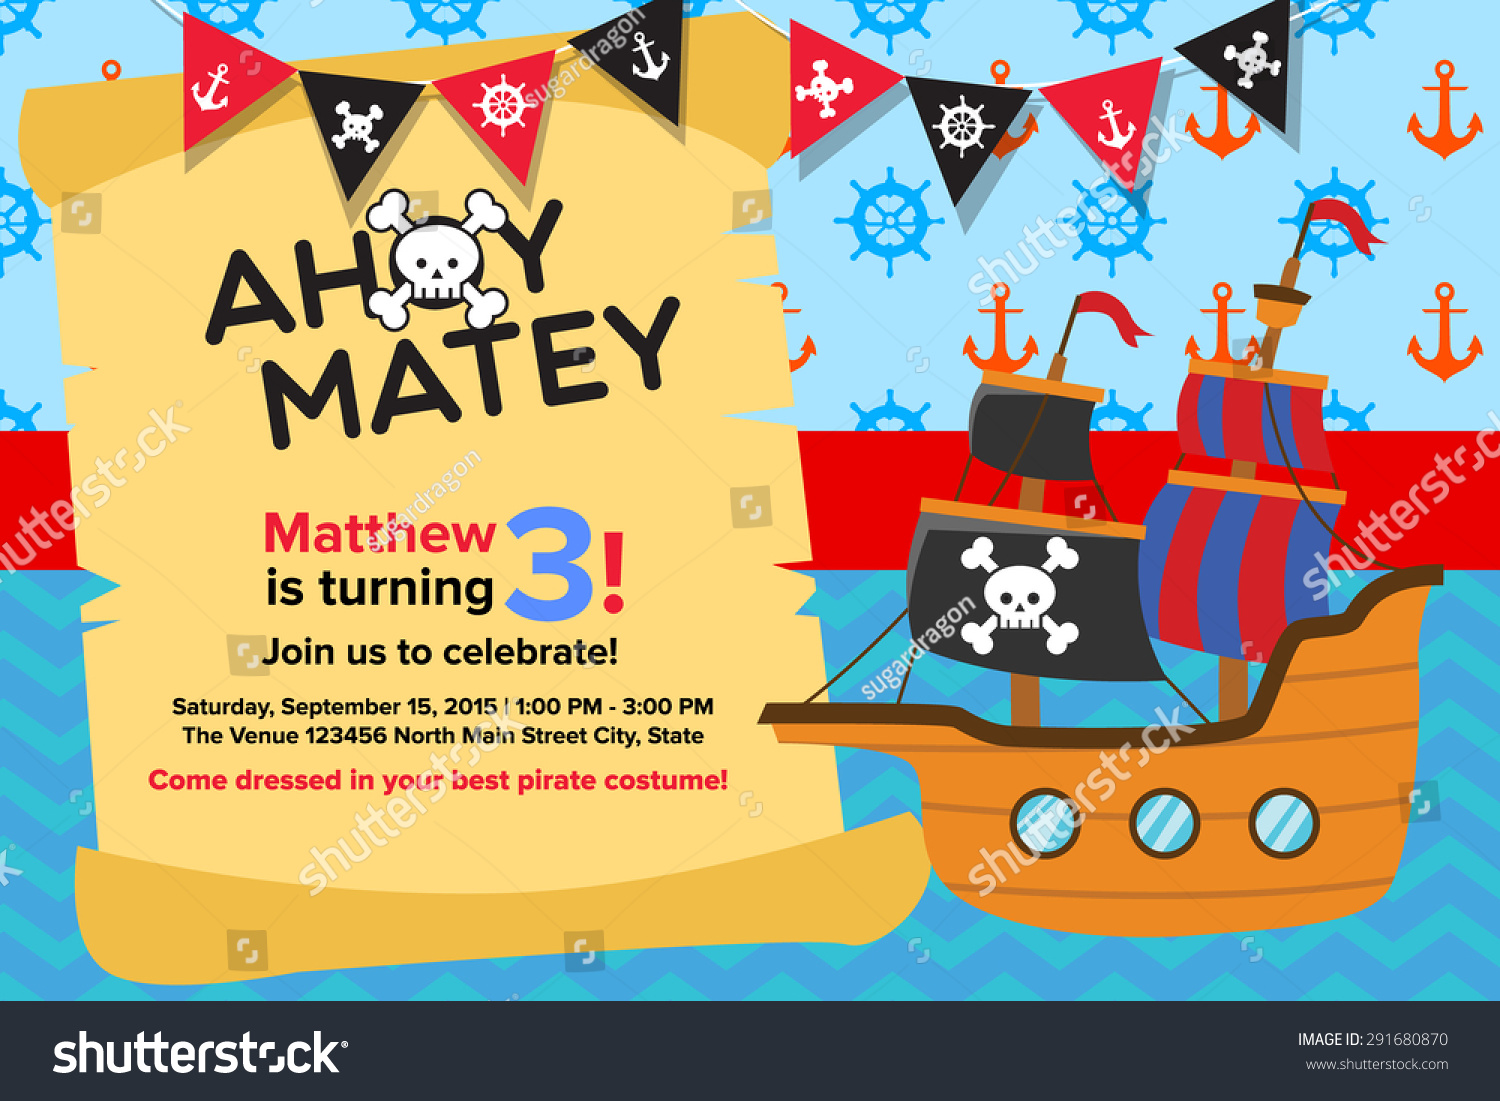 ahoy matey pirate birthday invitation card stock vector 291680870 ahoy matey pirate birthday invitation card template